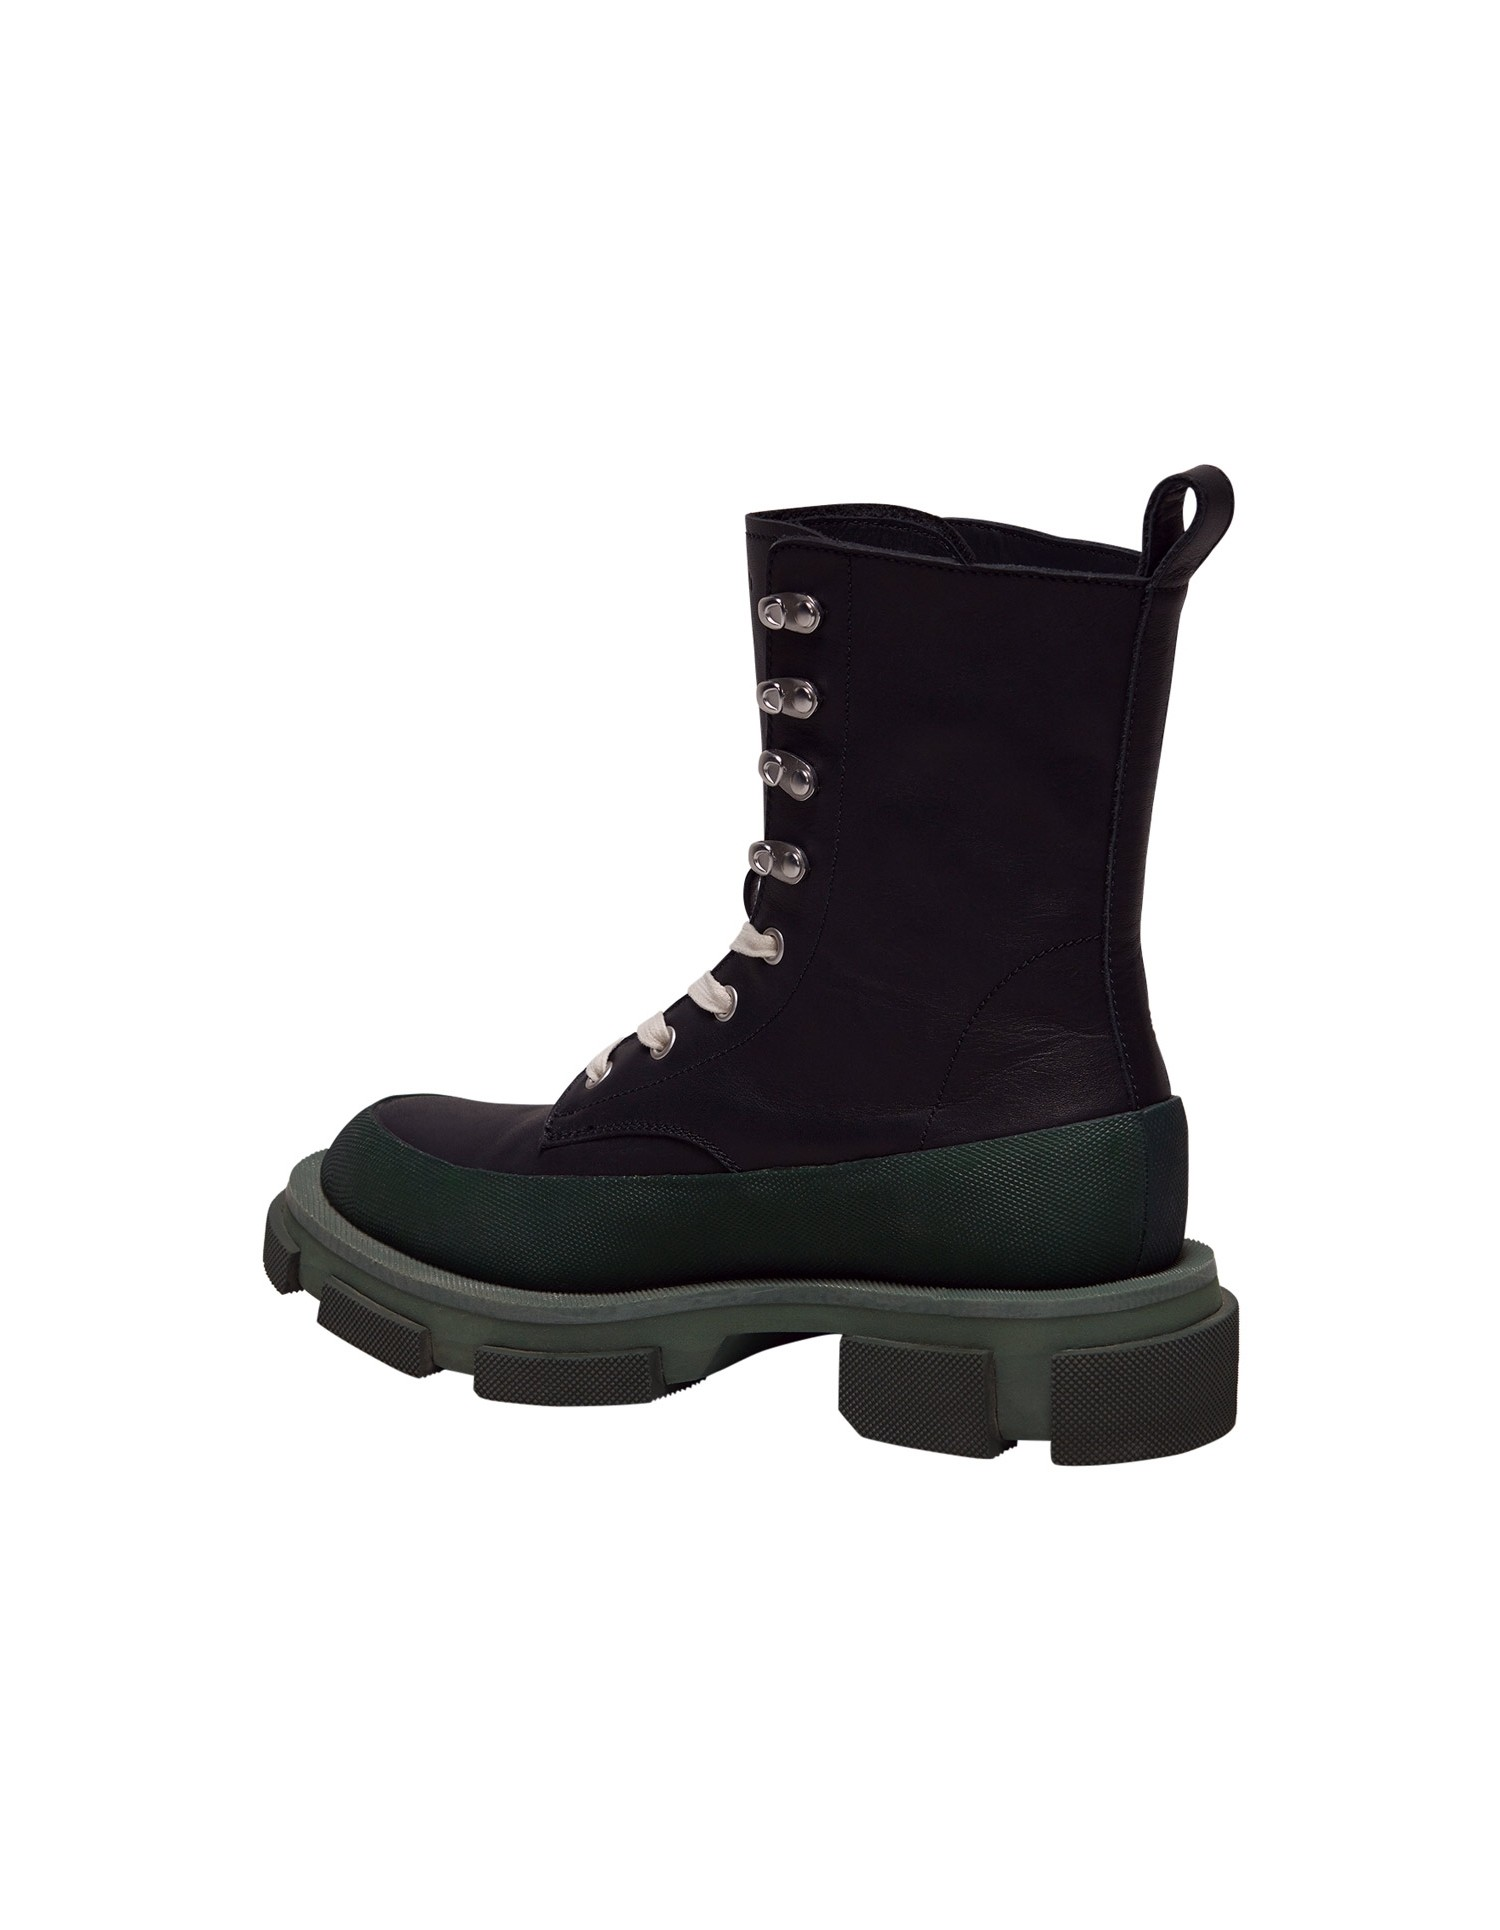 Both x MONSE Gao High Boots in Black and Olive Back Right Angle View